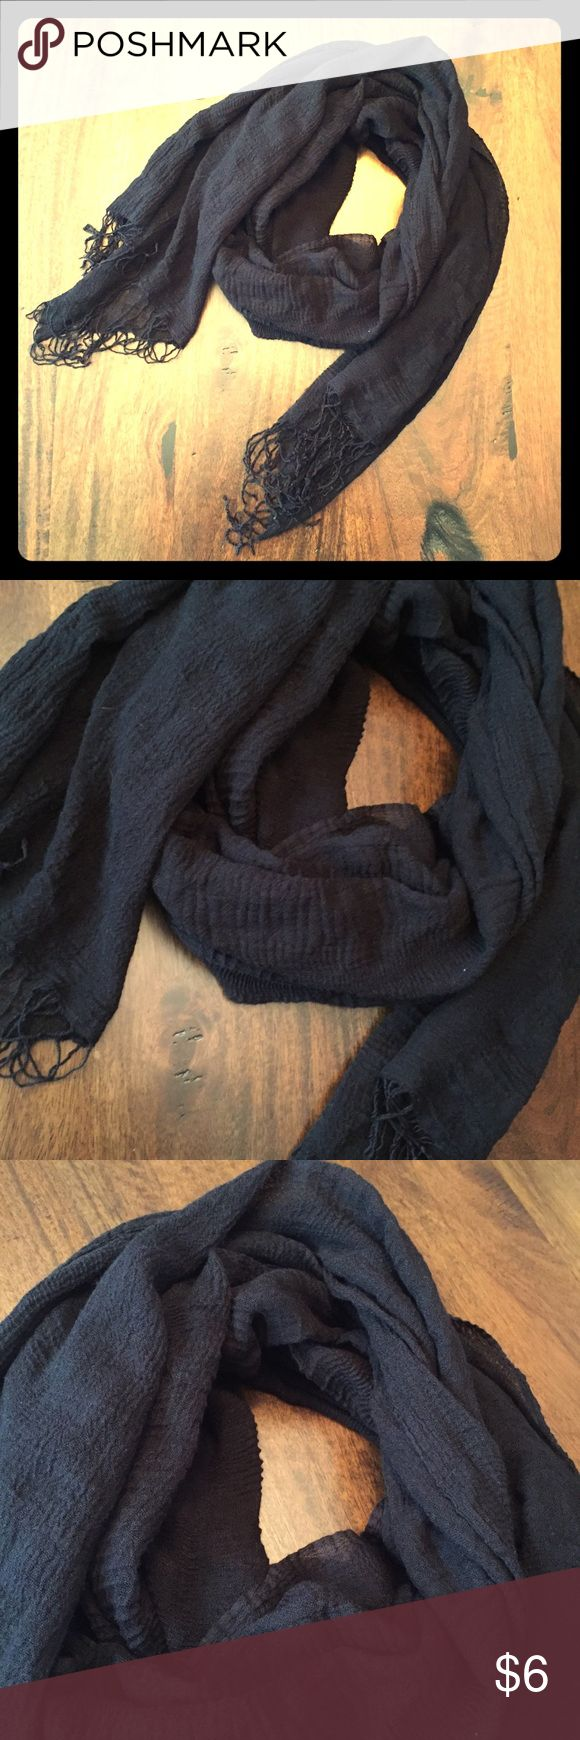 Black Textured Fashion Scarf Sashay into style with this solid black textured fashion scarf! This sassy scarf has a crinkled texture and funky fringe to keep your look legit. Lightweight. 100% acrylic. One size. Accessories Scarves & Wraps